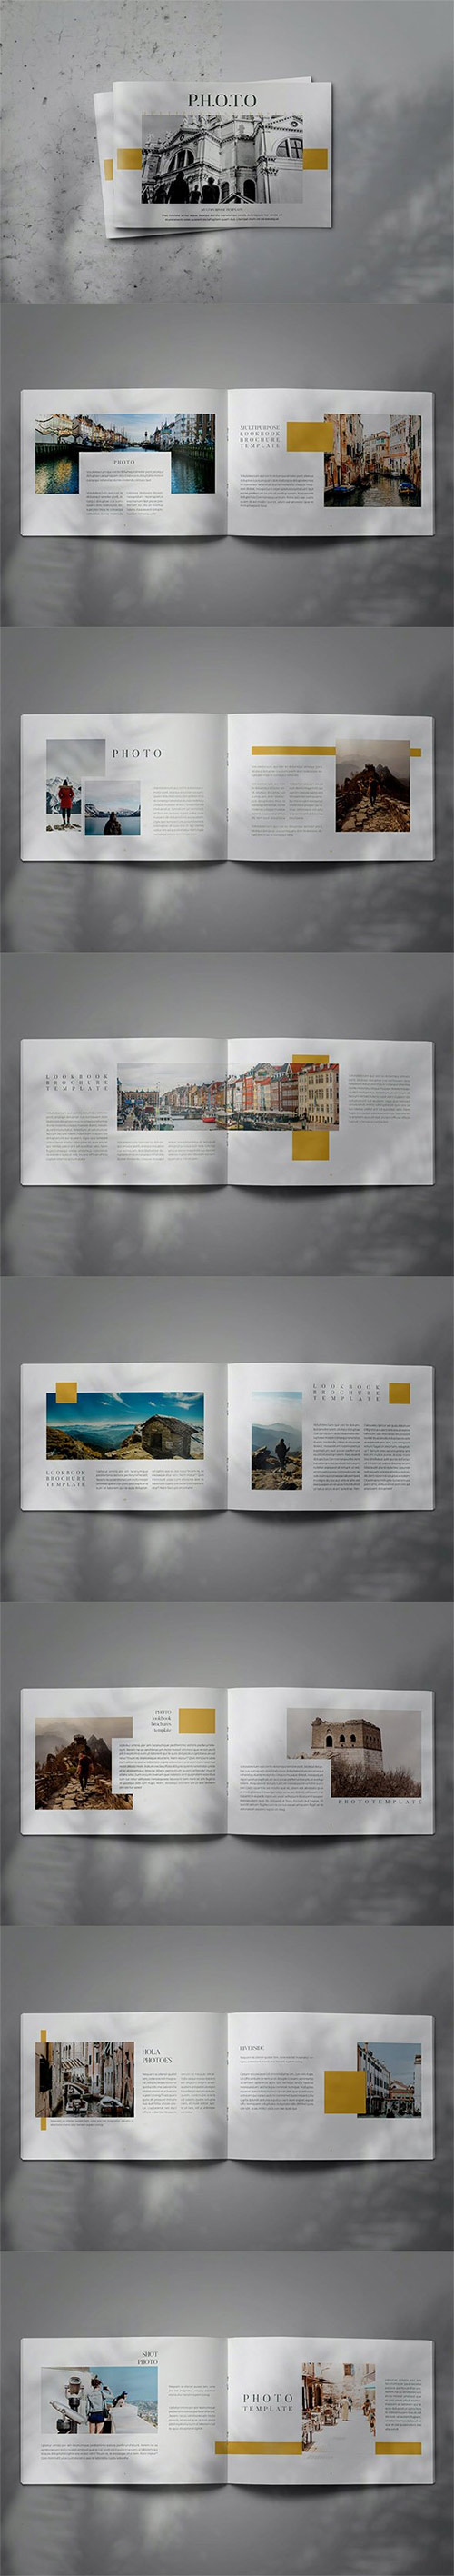 PHOTO - Indesign Brochure Lookbook Template